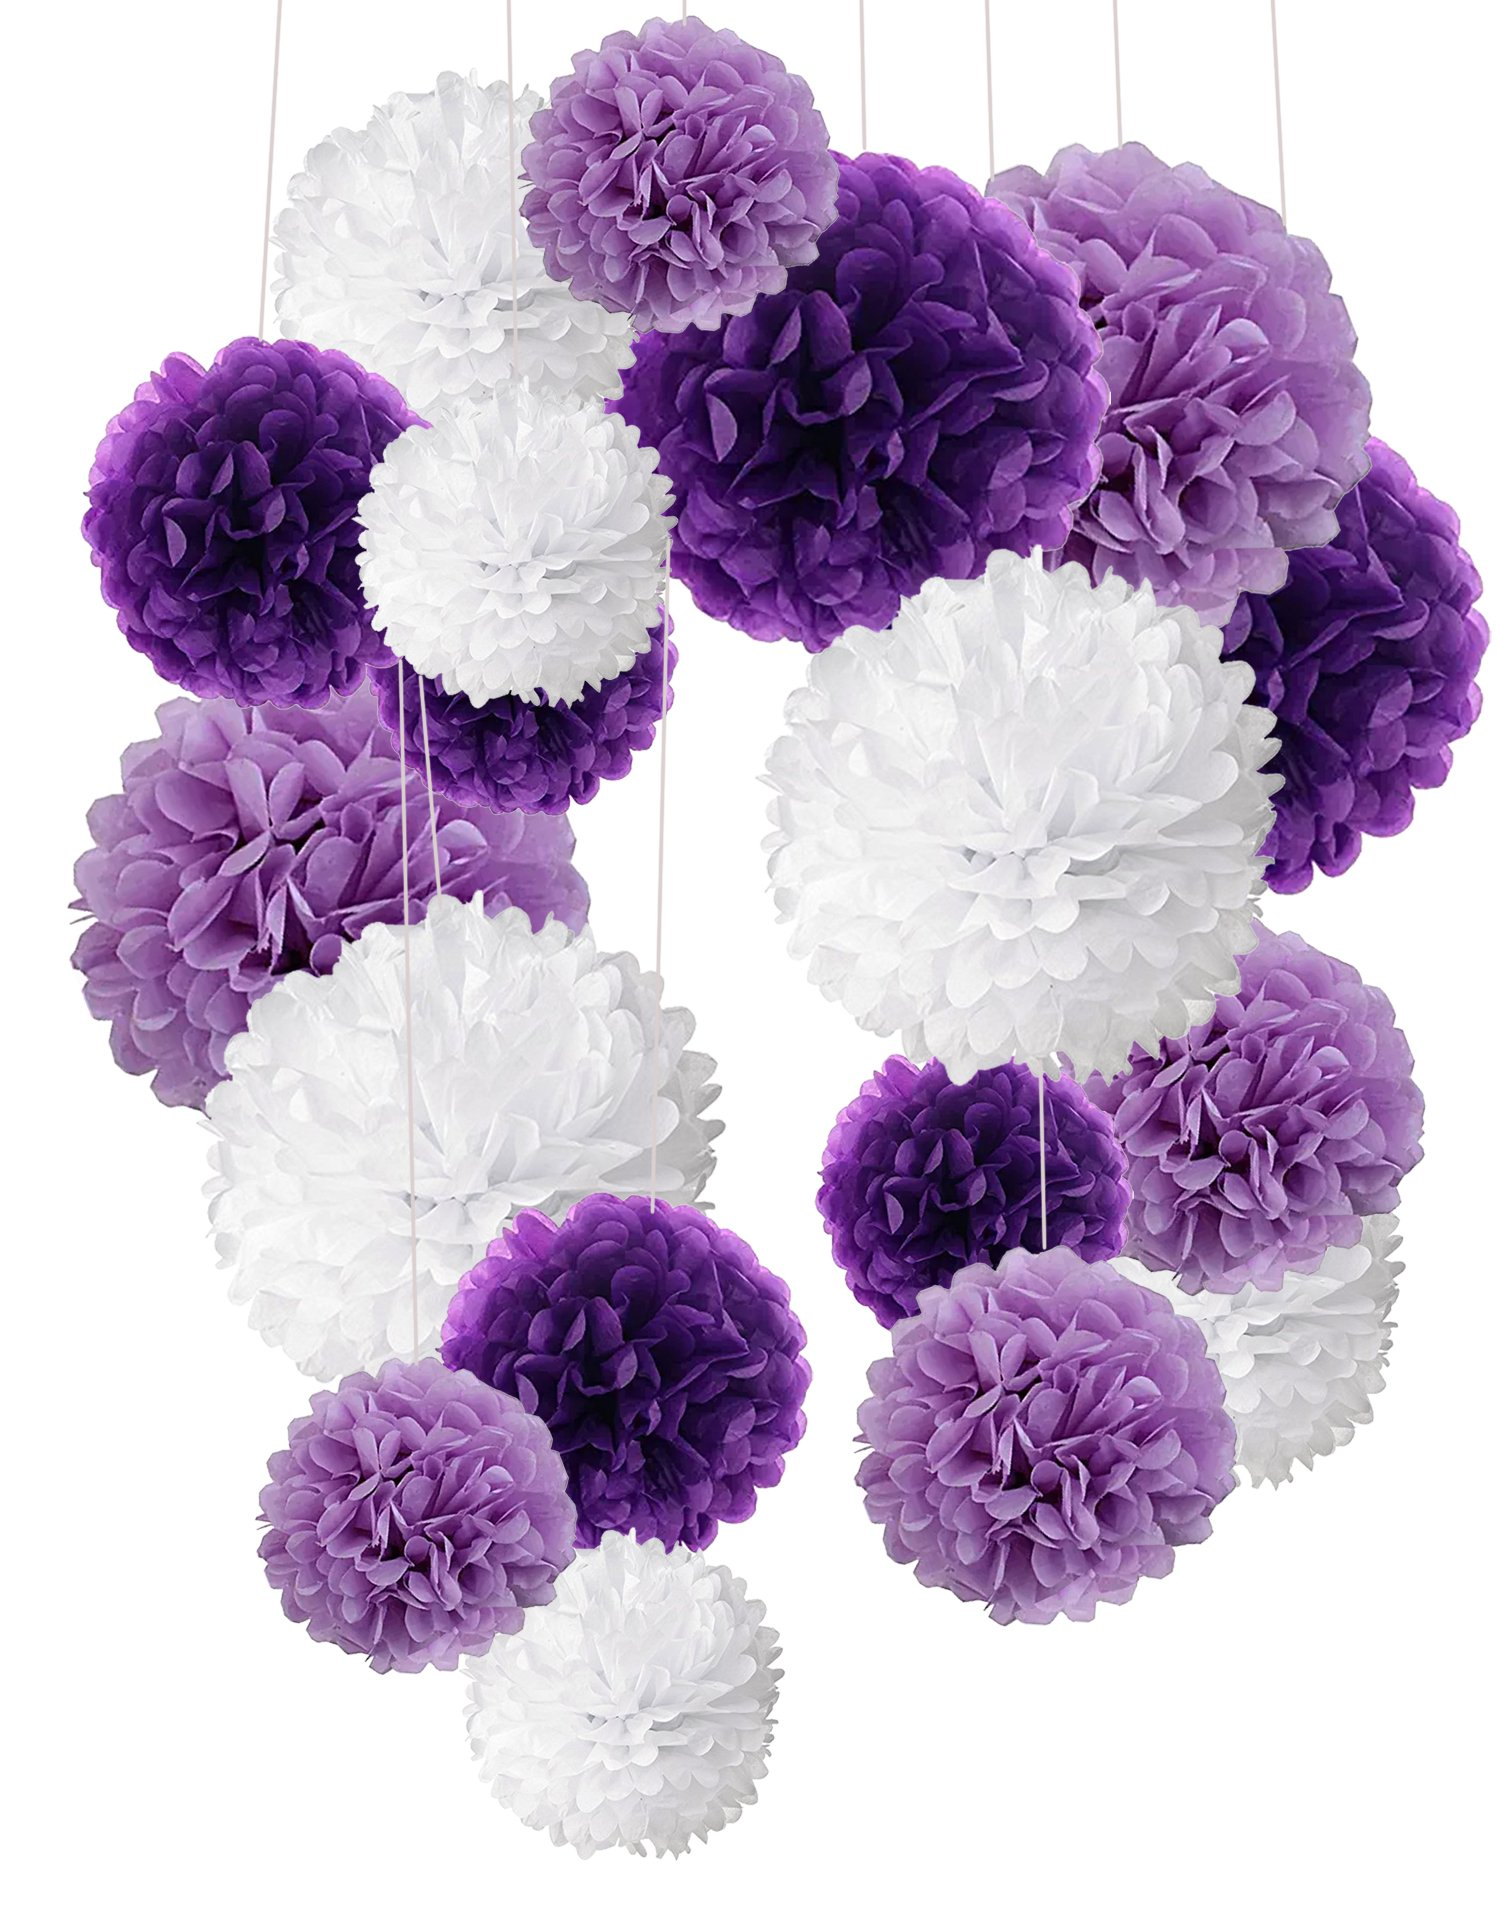 Tissue paper pom poms recosis paper flower ball for birthday party tissue paper pom poms recosis paper flower ball for birthday party wedding baby mightylinksfo